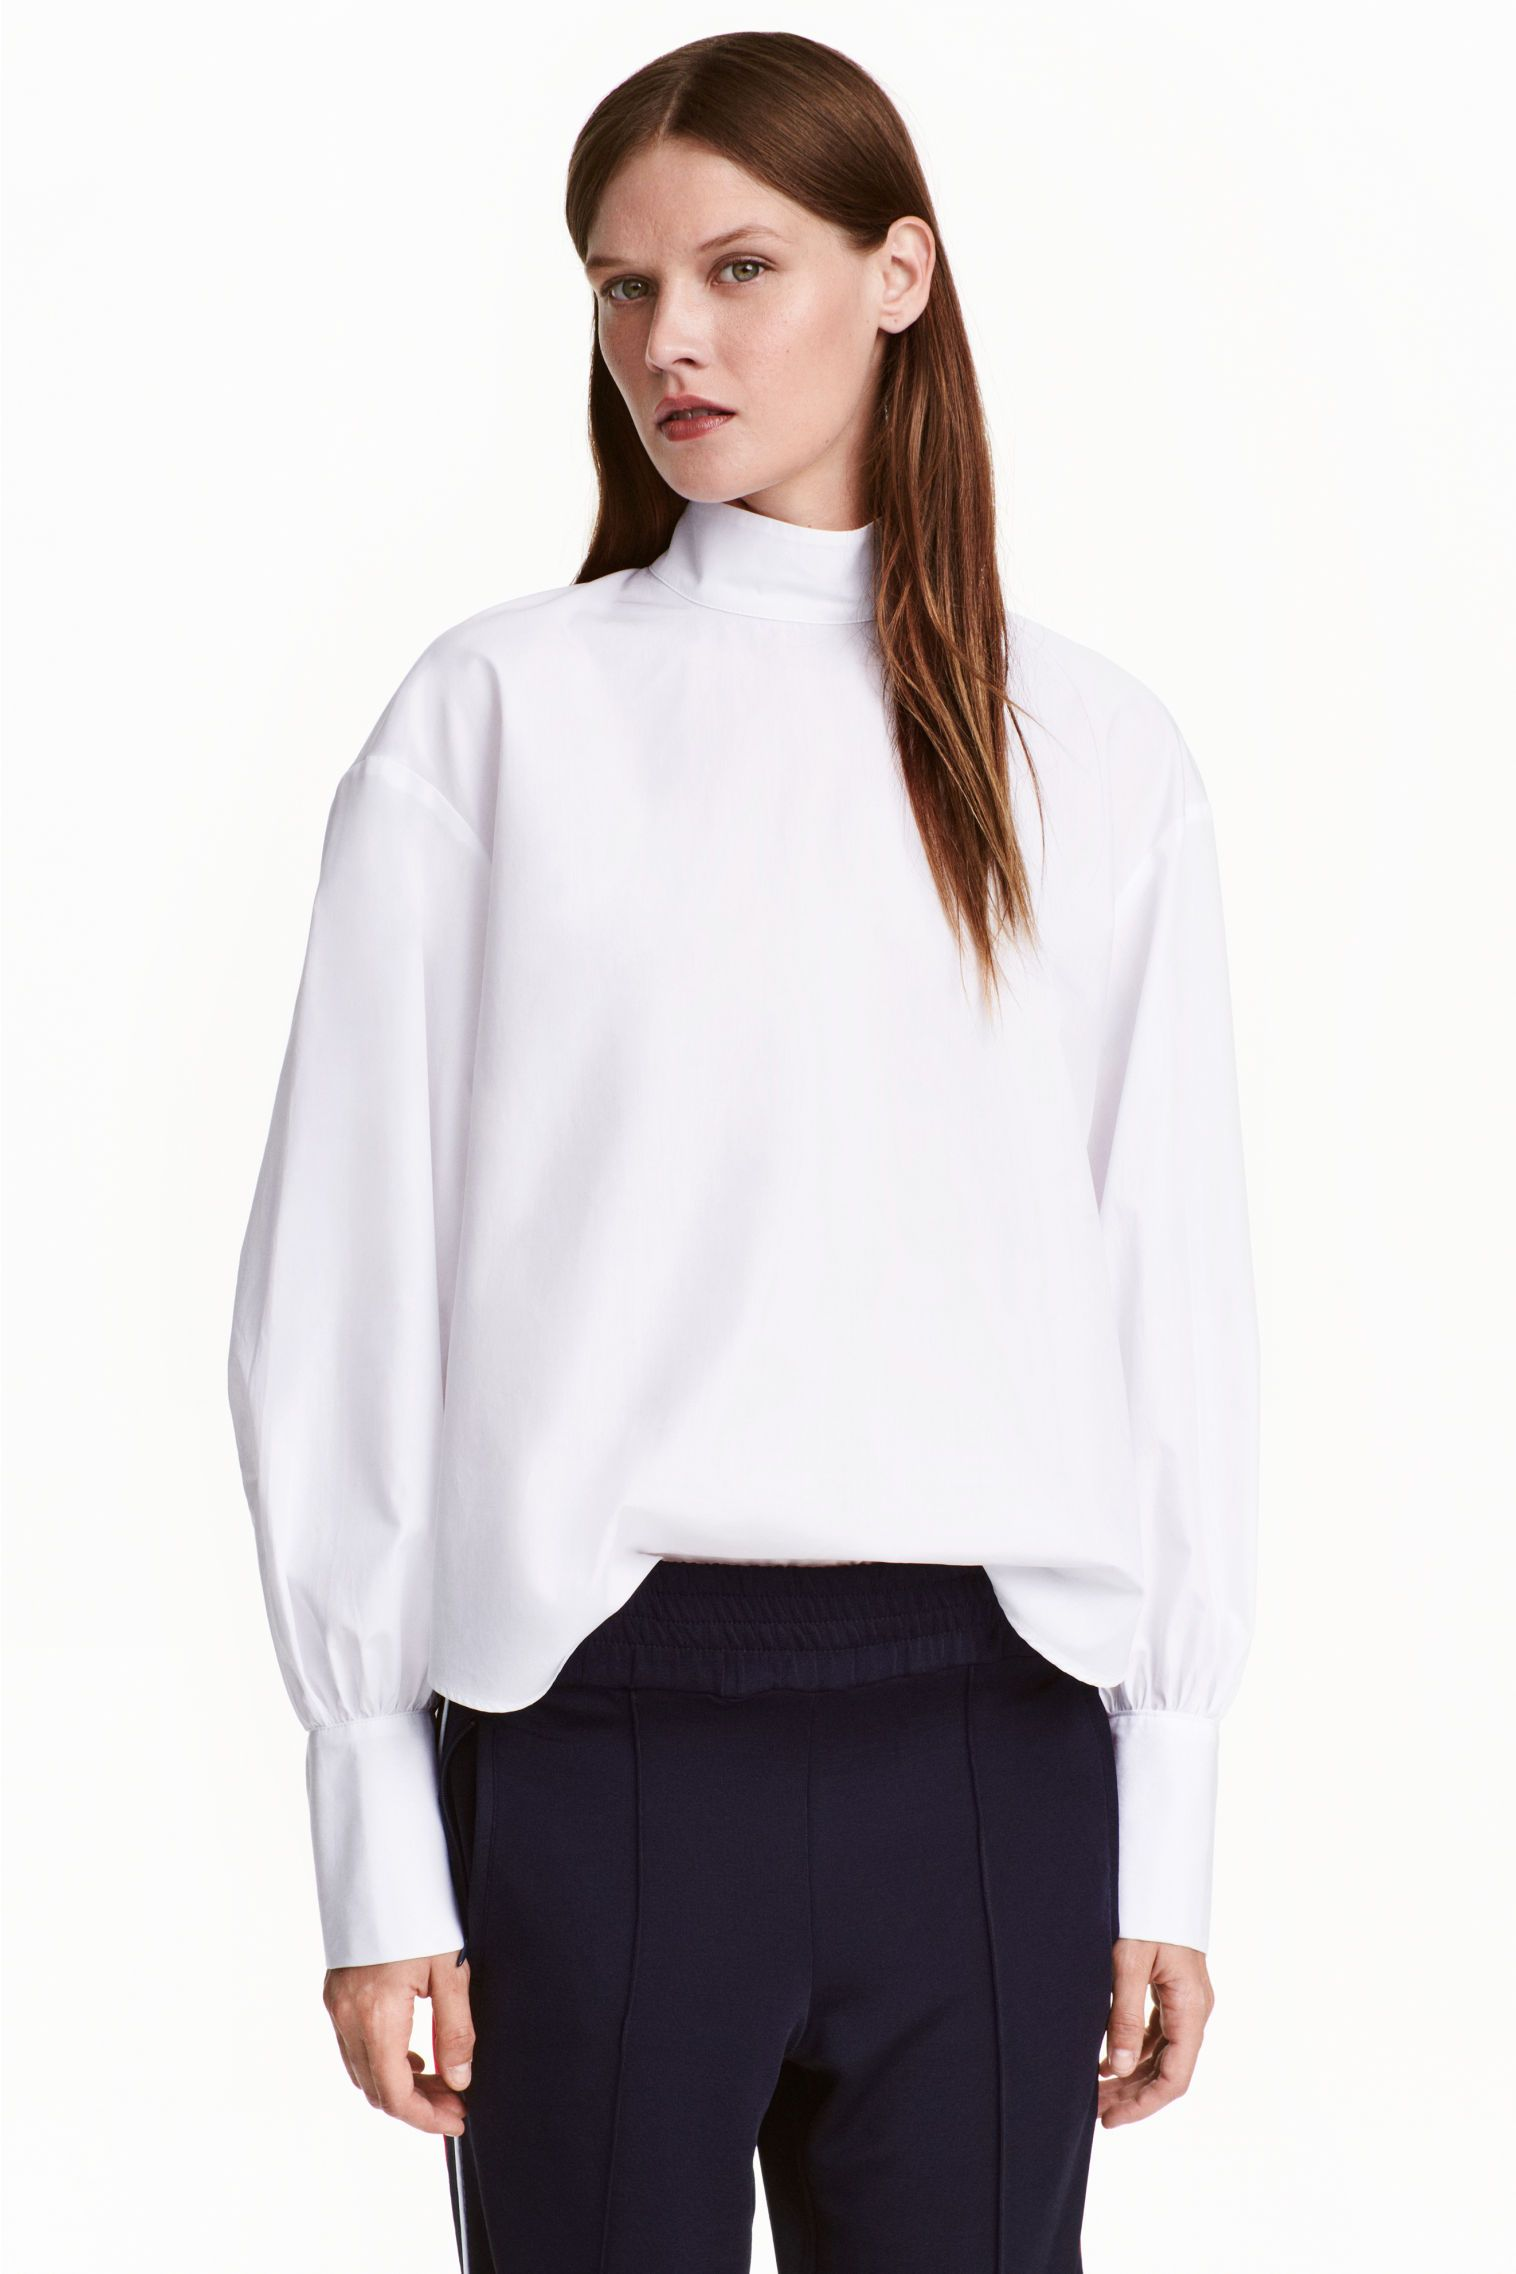 wide cotton blouse with turtleneck and cuff sleeves